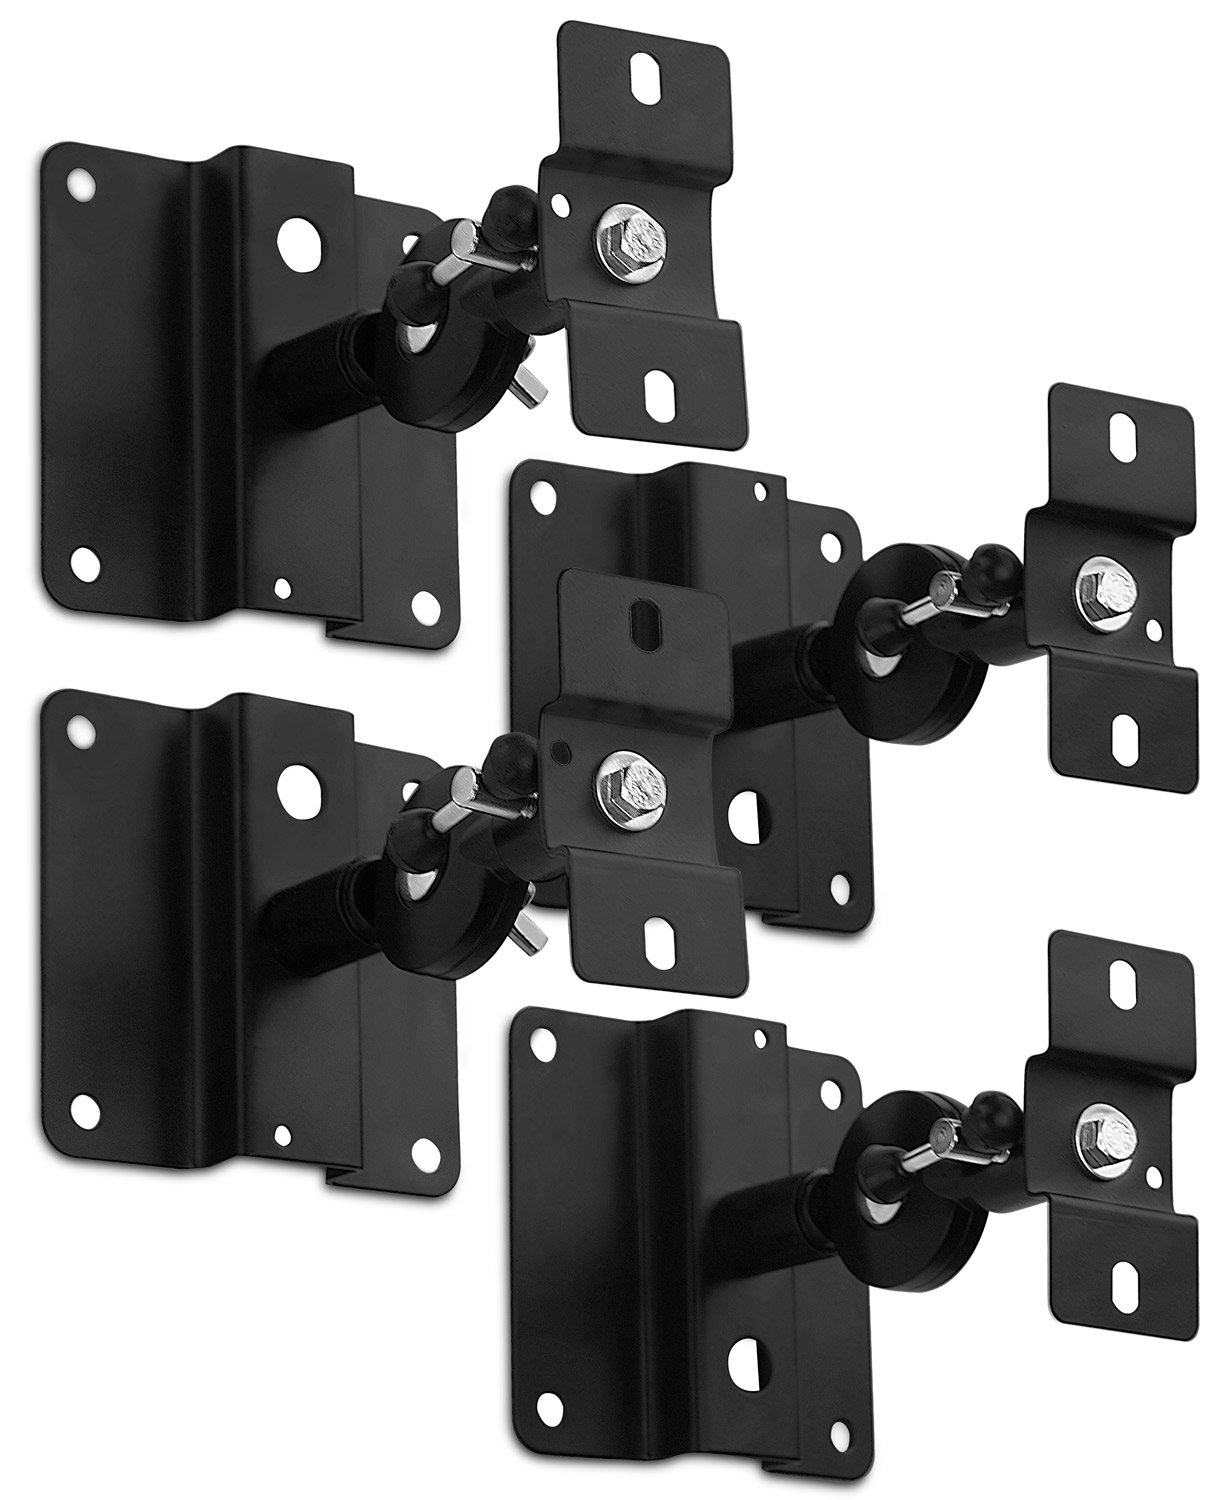 Mount-It! MI-SB03 Quad Low Profile Heavy Duty, Anti-Theft, Universal, Adjustable, Articulating, Hi-Fi Audio Media, 5.1 Channel Surround Sound, Satellite Speaker Ceiling and Wall Mount Brackets, Black,4 PCS by Mount-It!